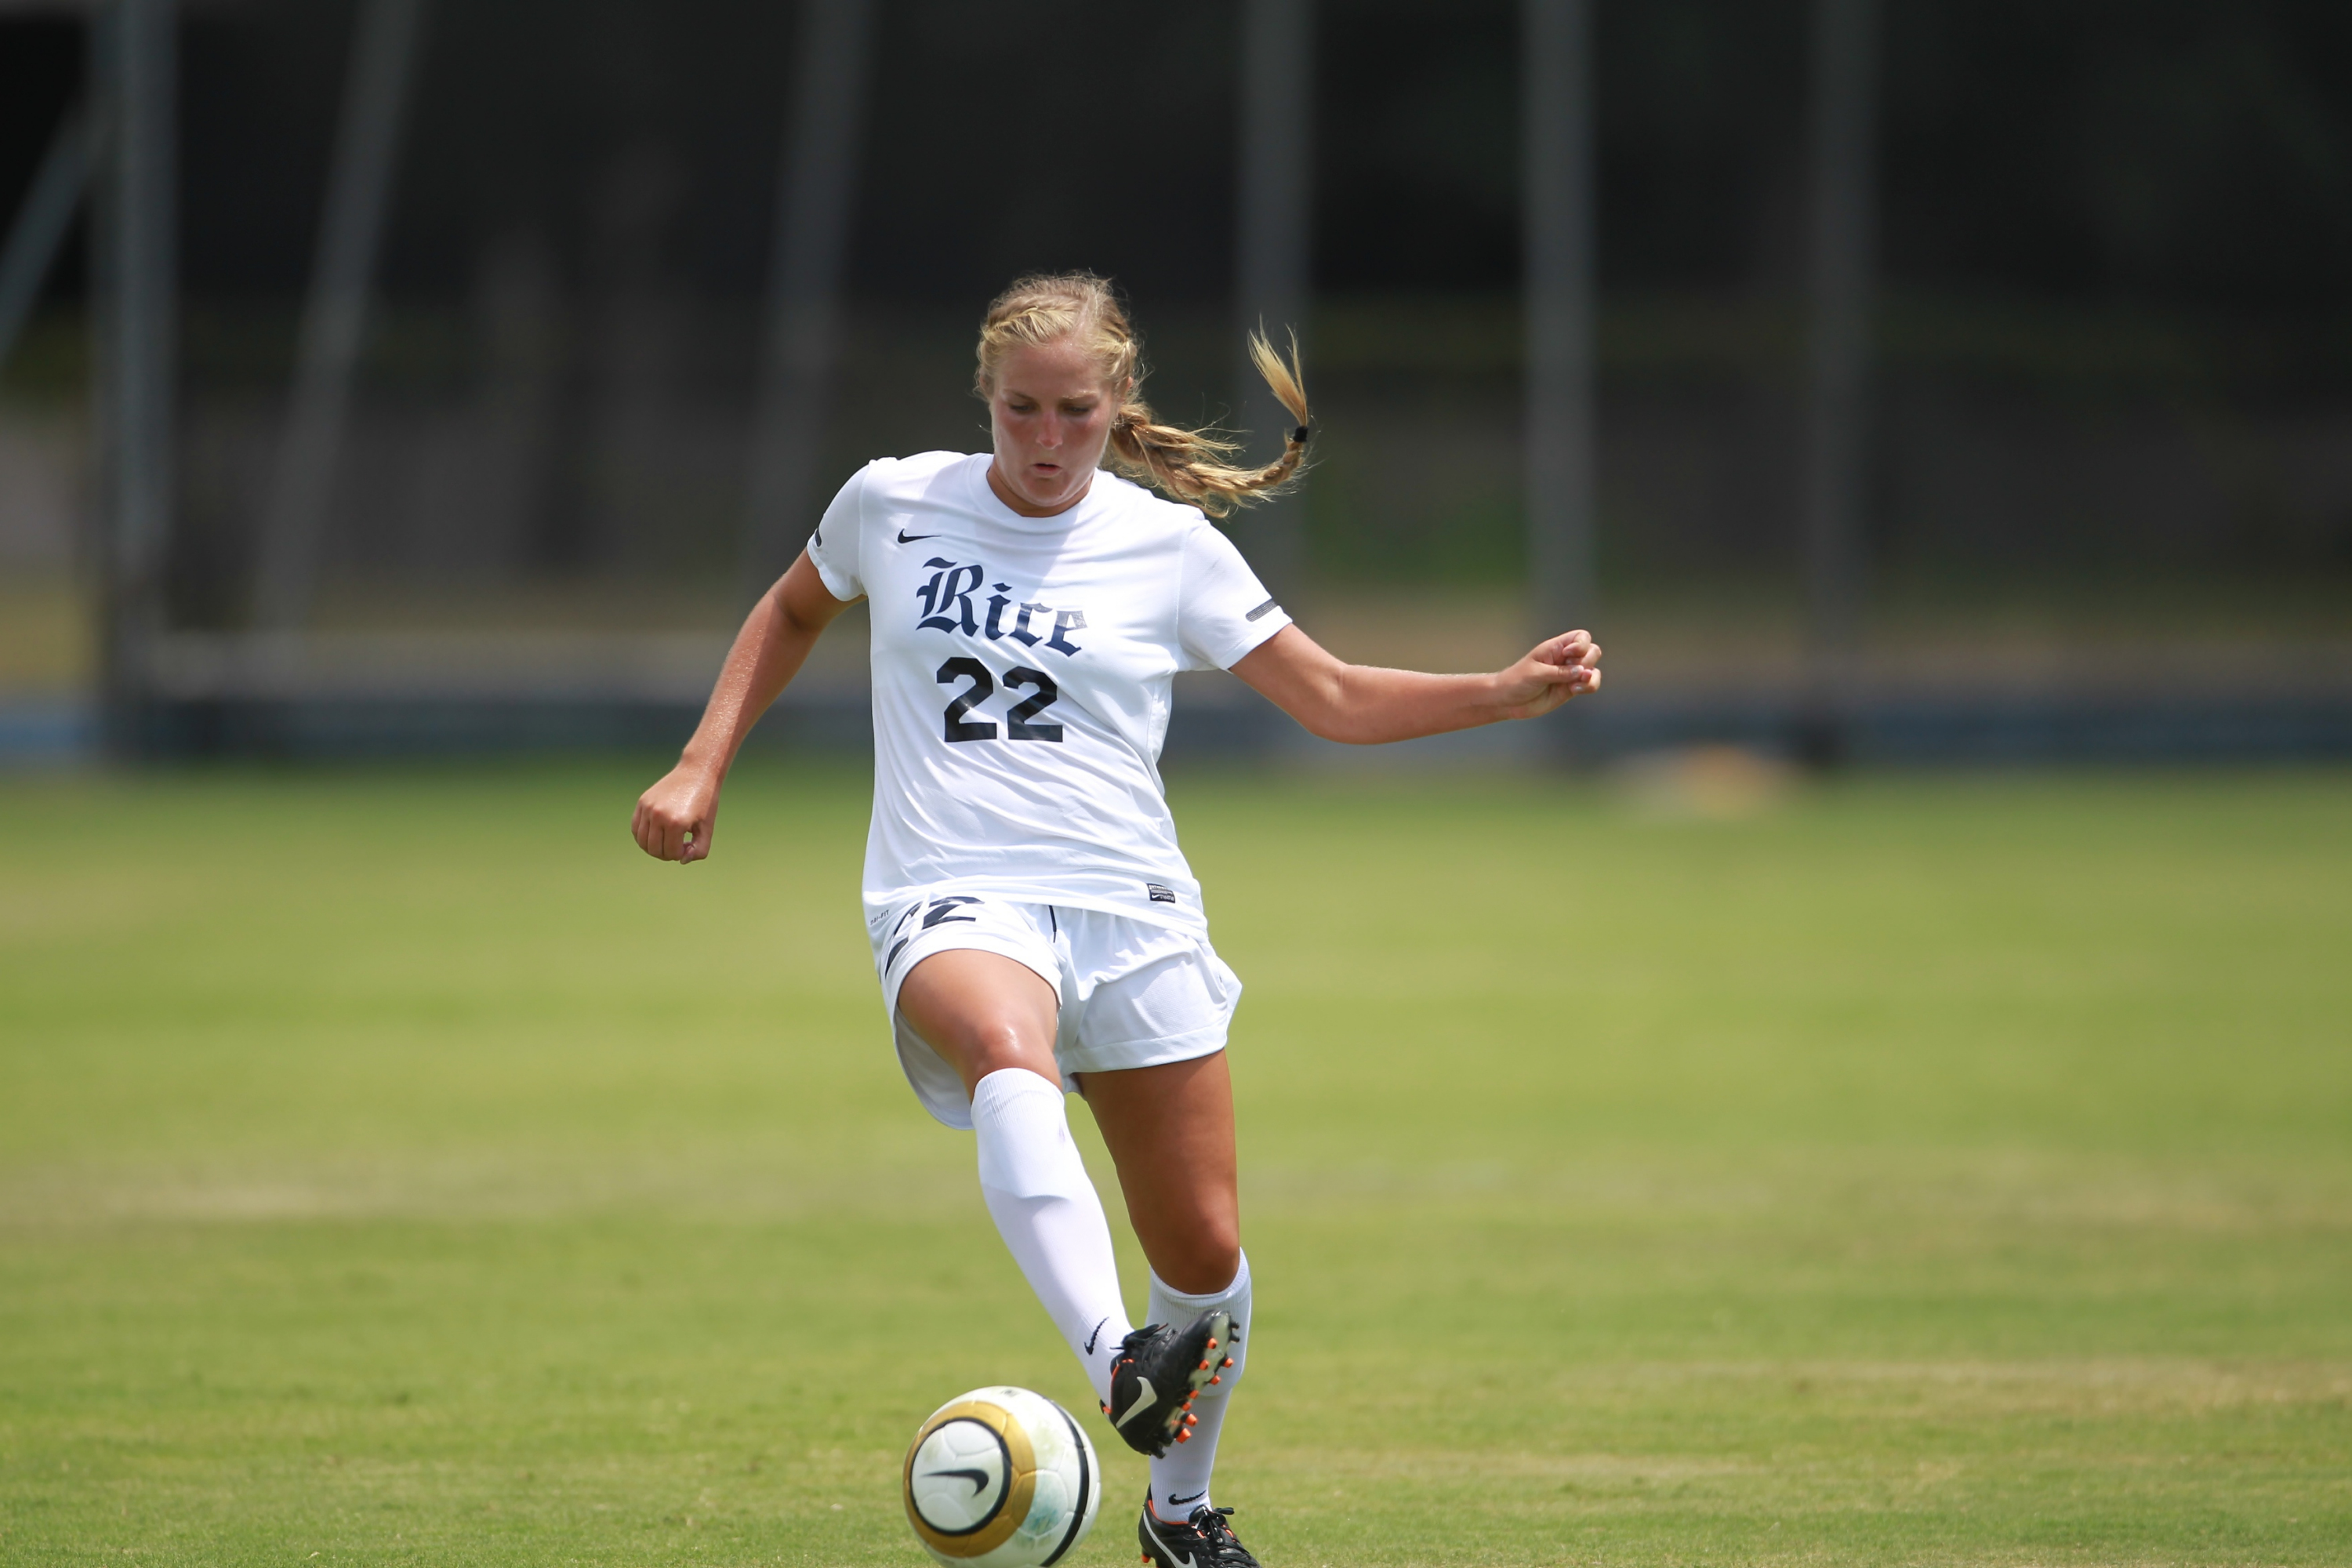 <b>Rice next plays at Colorado College on Friday.</b>